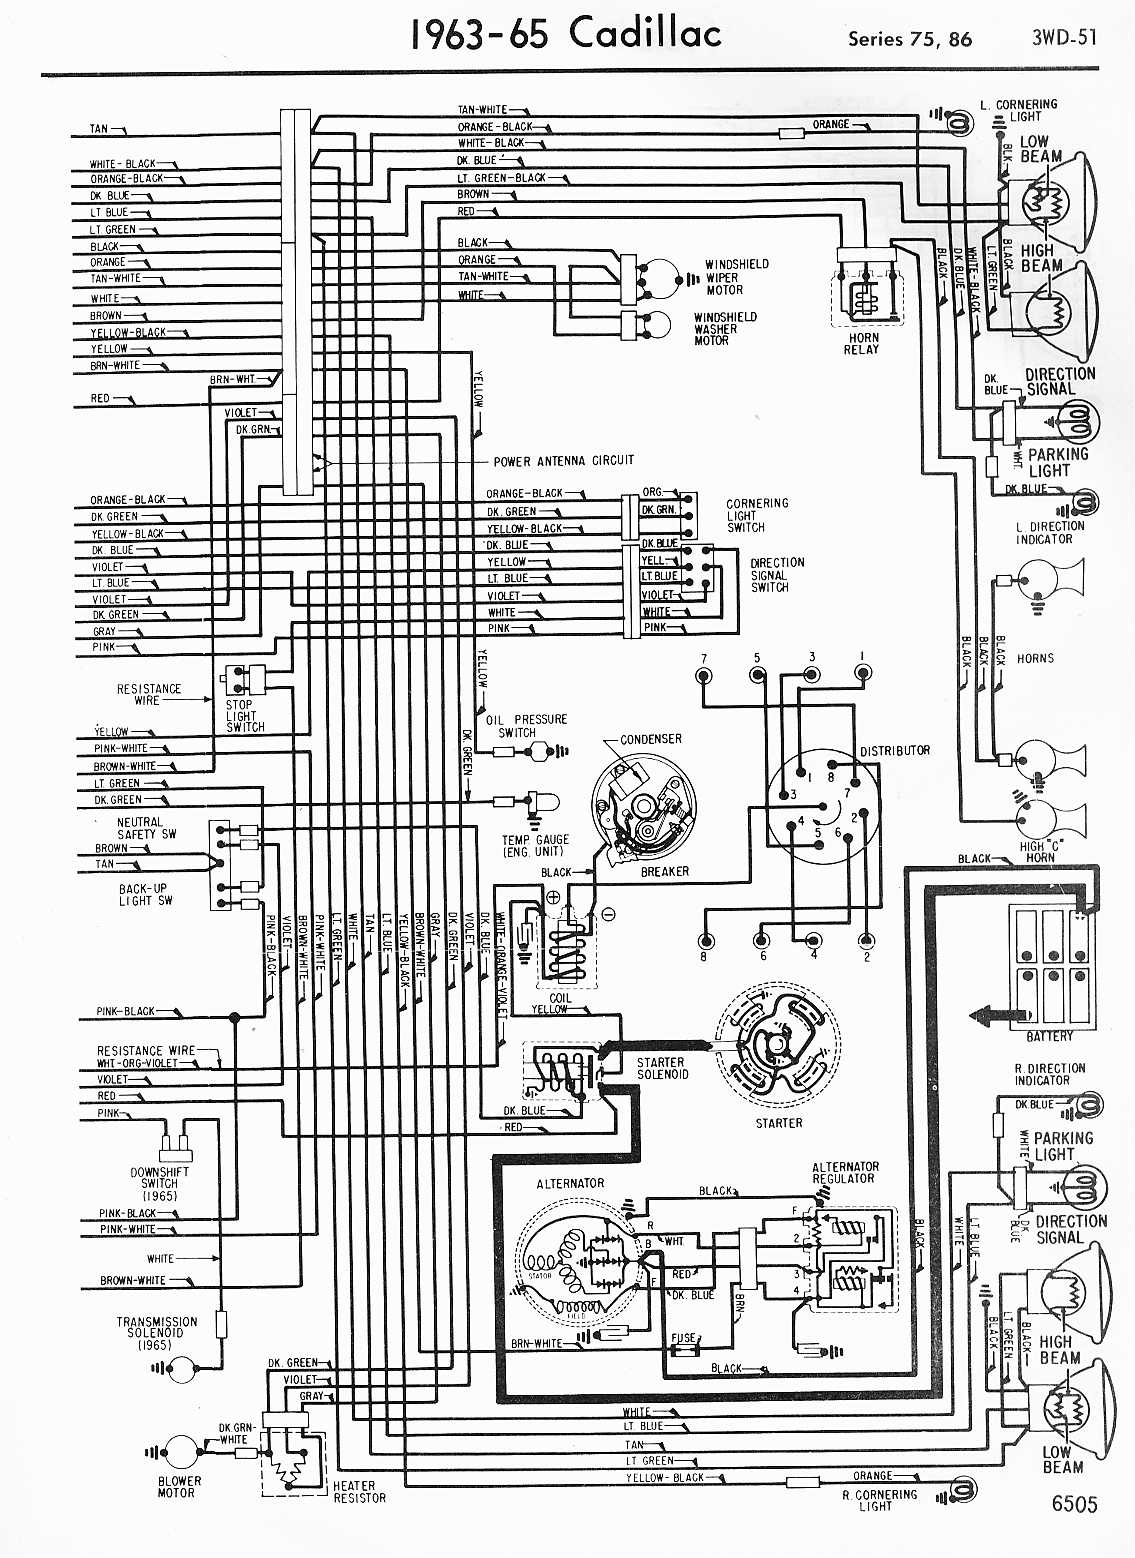 MWireCadi65_3WD 051 2000cad eldorado wiring diagram,eldorado \u2022 j squared co 70 Cadillac Eldorado at bakdesigns.co